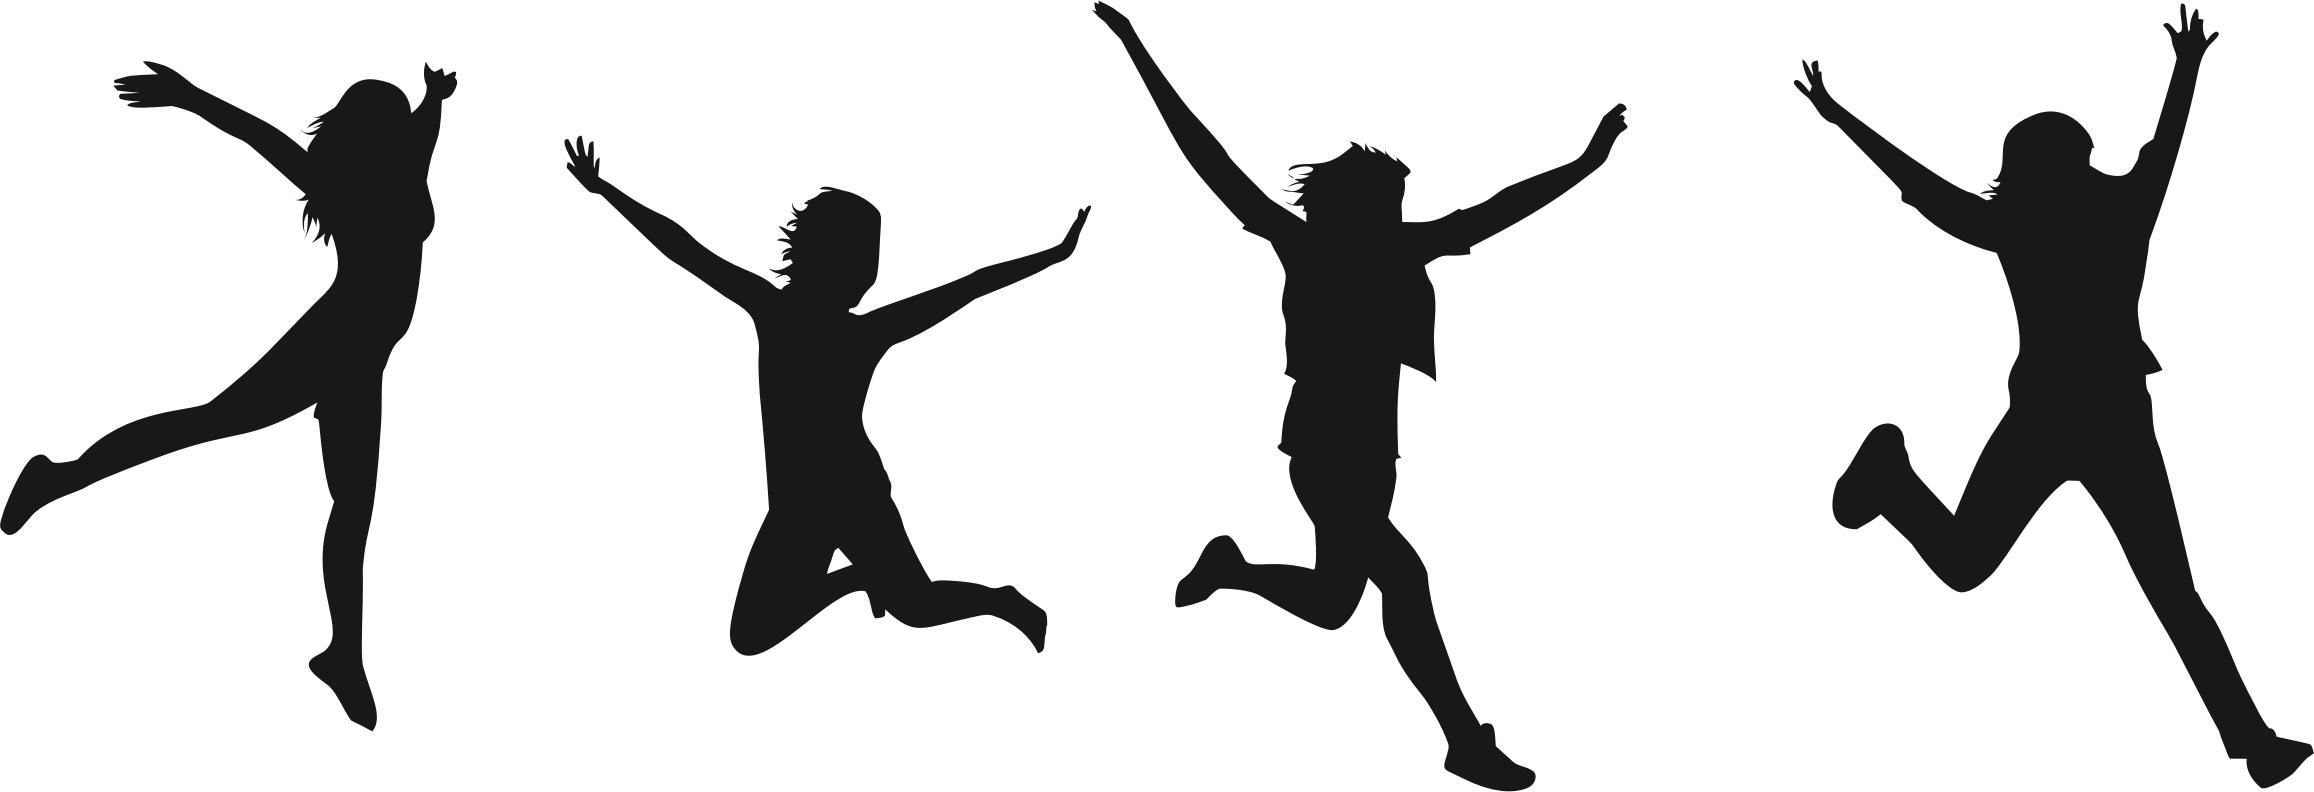 joy-jumping-silhouette-2